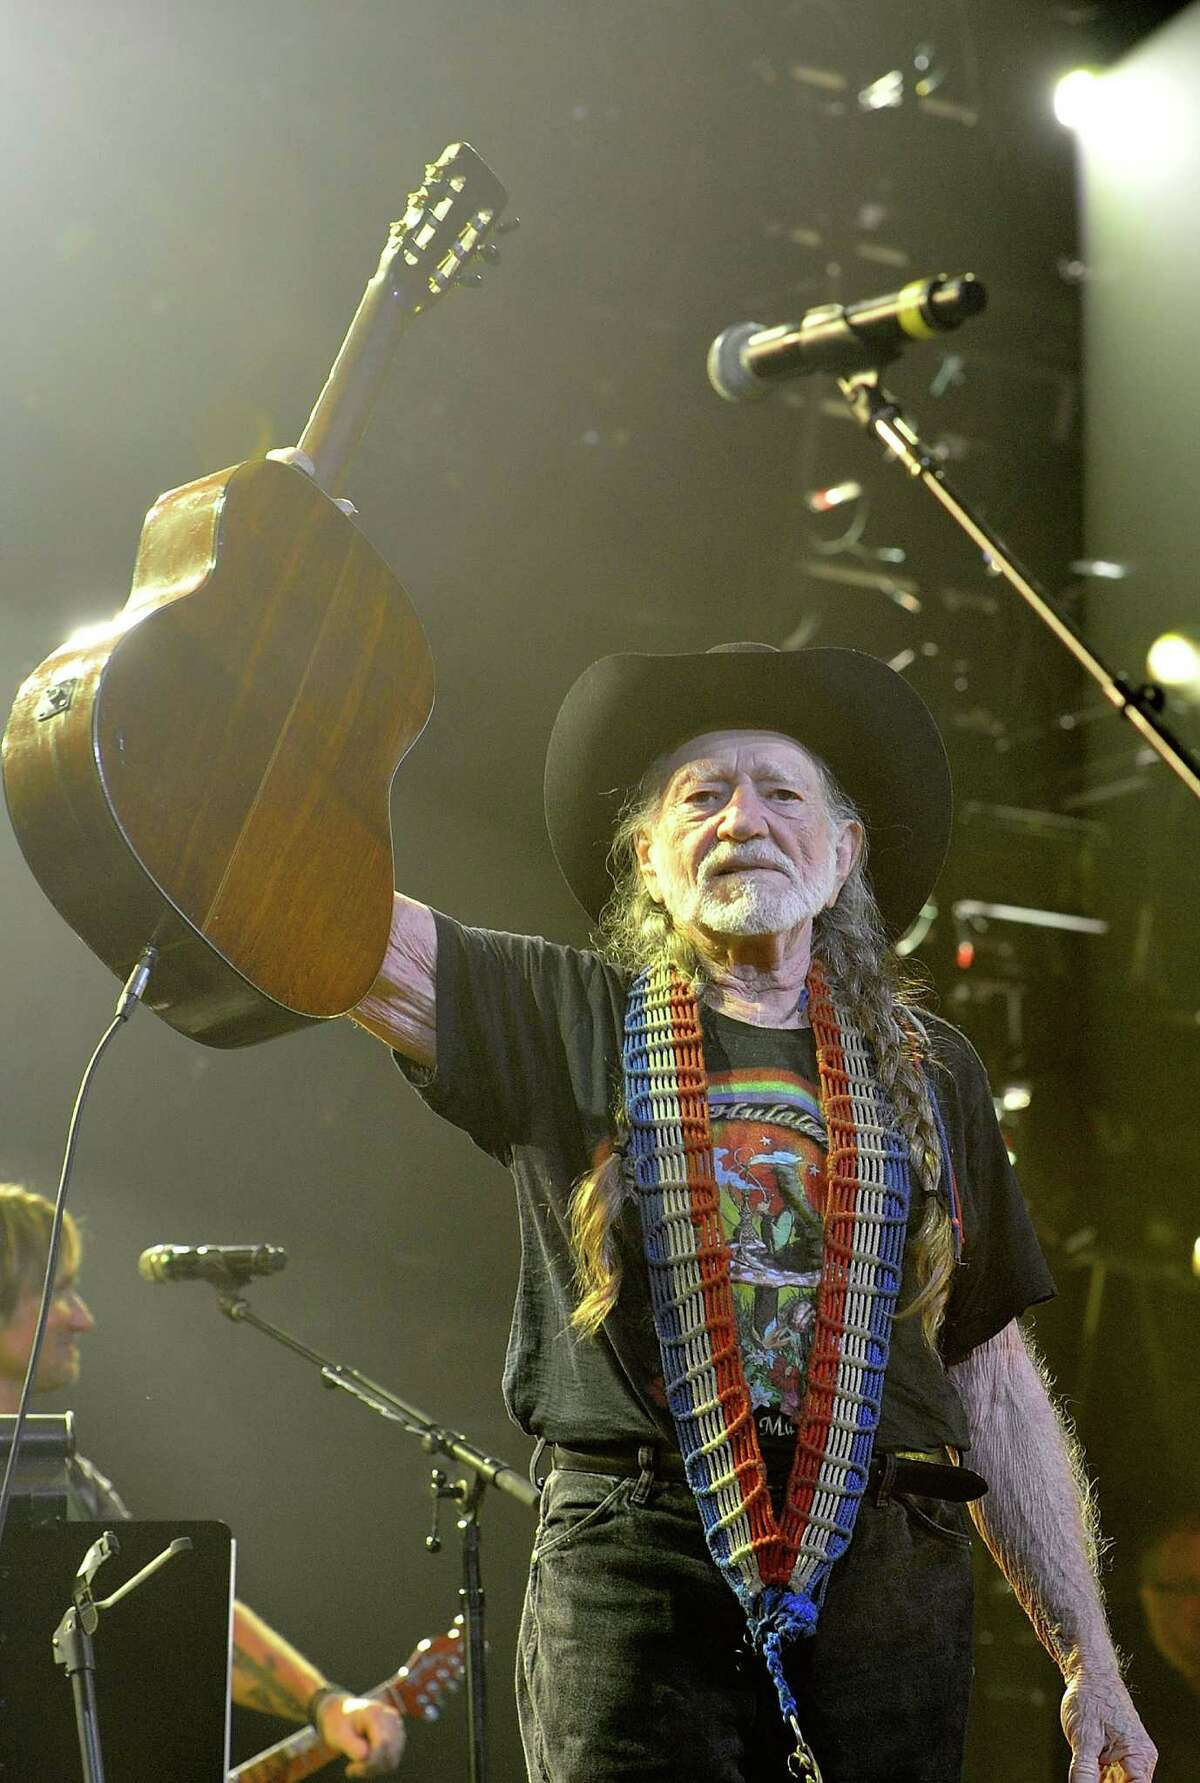 NASHVILLE, TN - APRIL 16: Willie Nelson performs during Keith Urban's Fourth annual We're All For The Hall benefit concert at Bridgestone Arena on April 16, 2013 in Nashville, Tennessee.